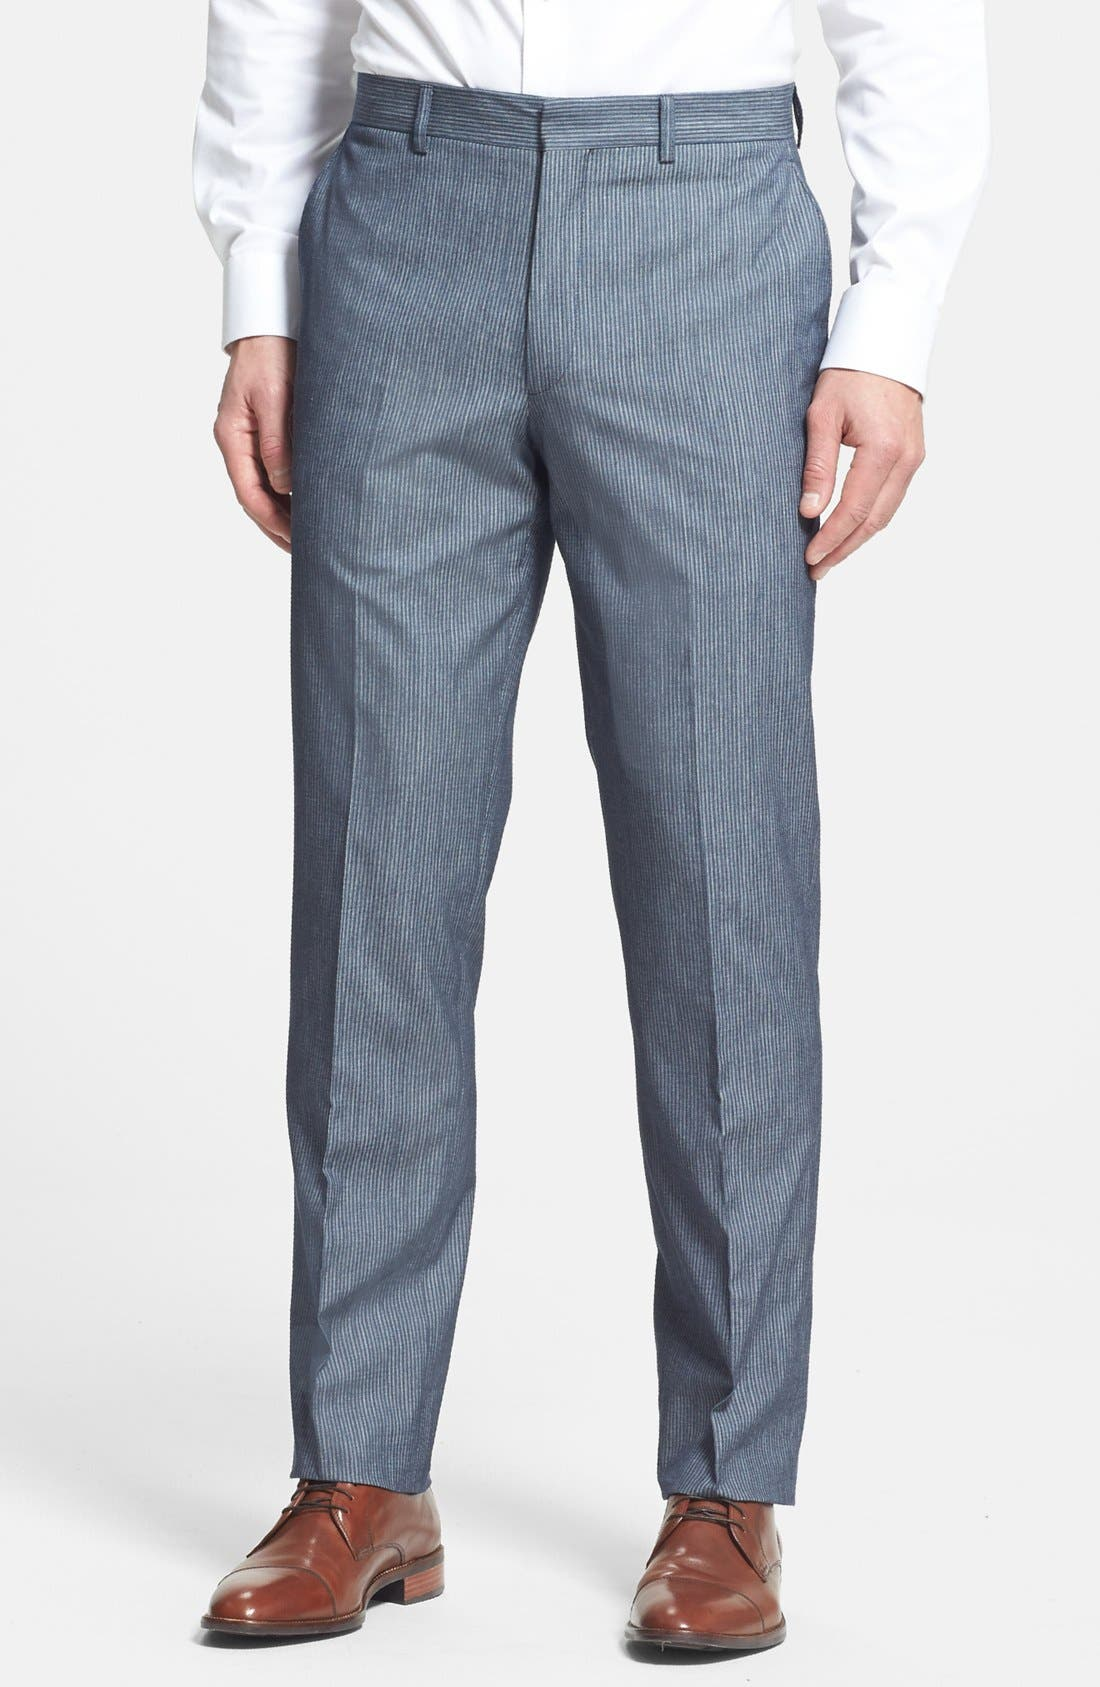 Alternate Image 1 Selected - Linea Naturale Trim Fit Flat Front Cotton Trousers (Nordstrom Exclusive)